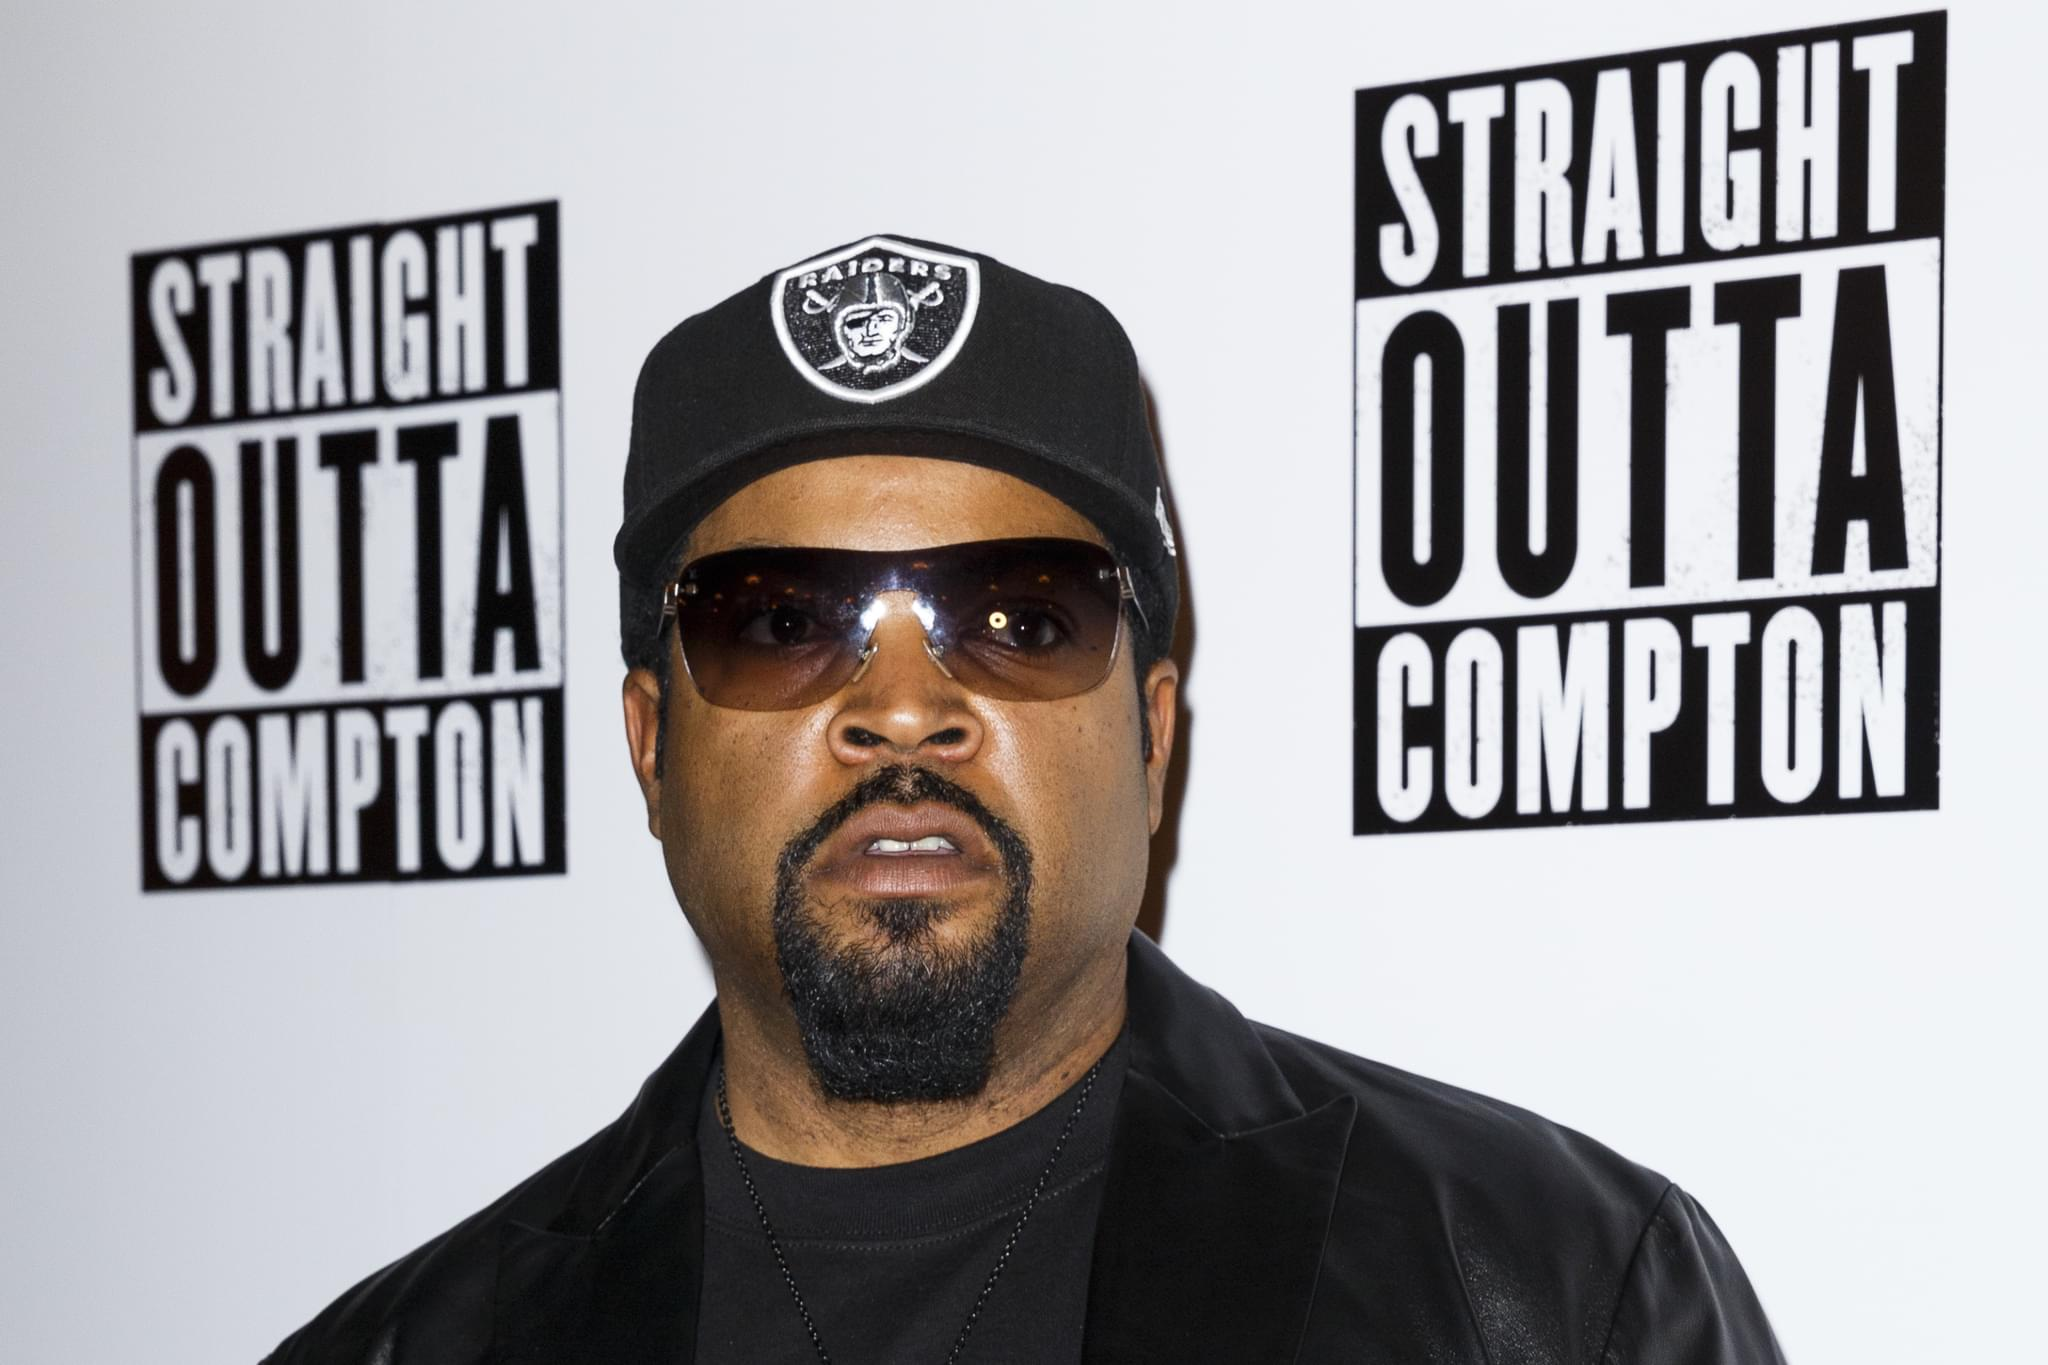 ICE CUBE is Selling a T-shirt to Raise Money for the Cause!